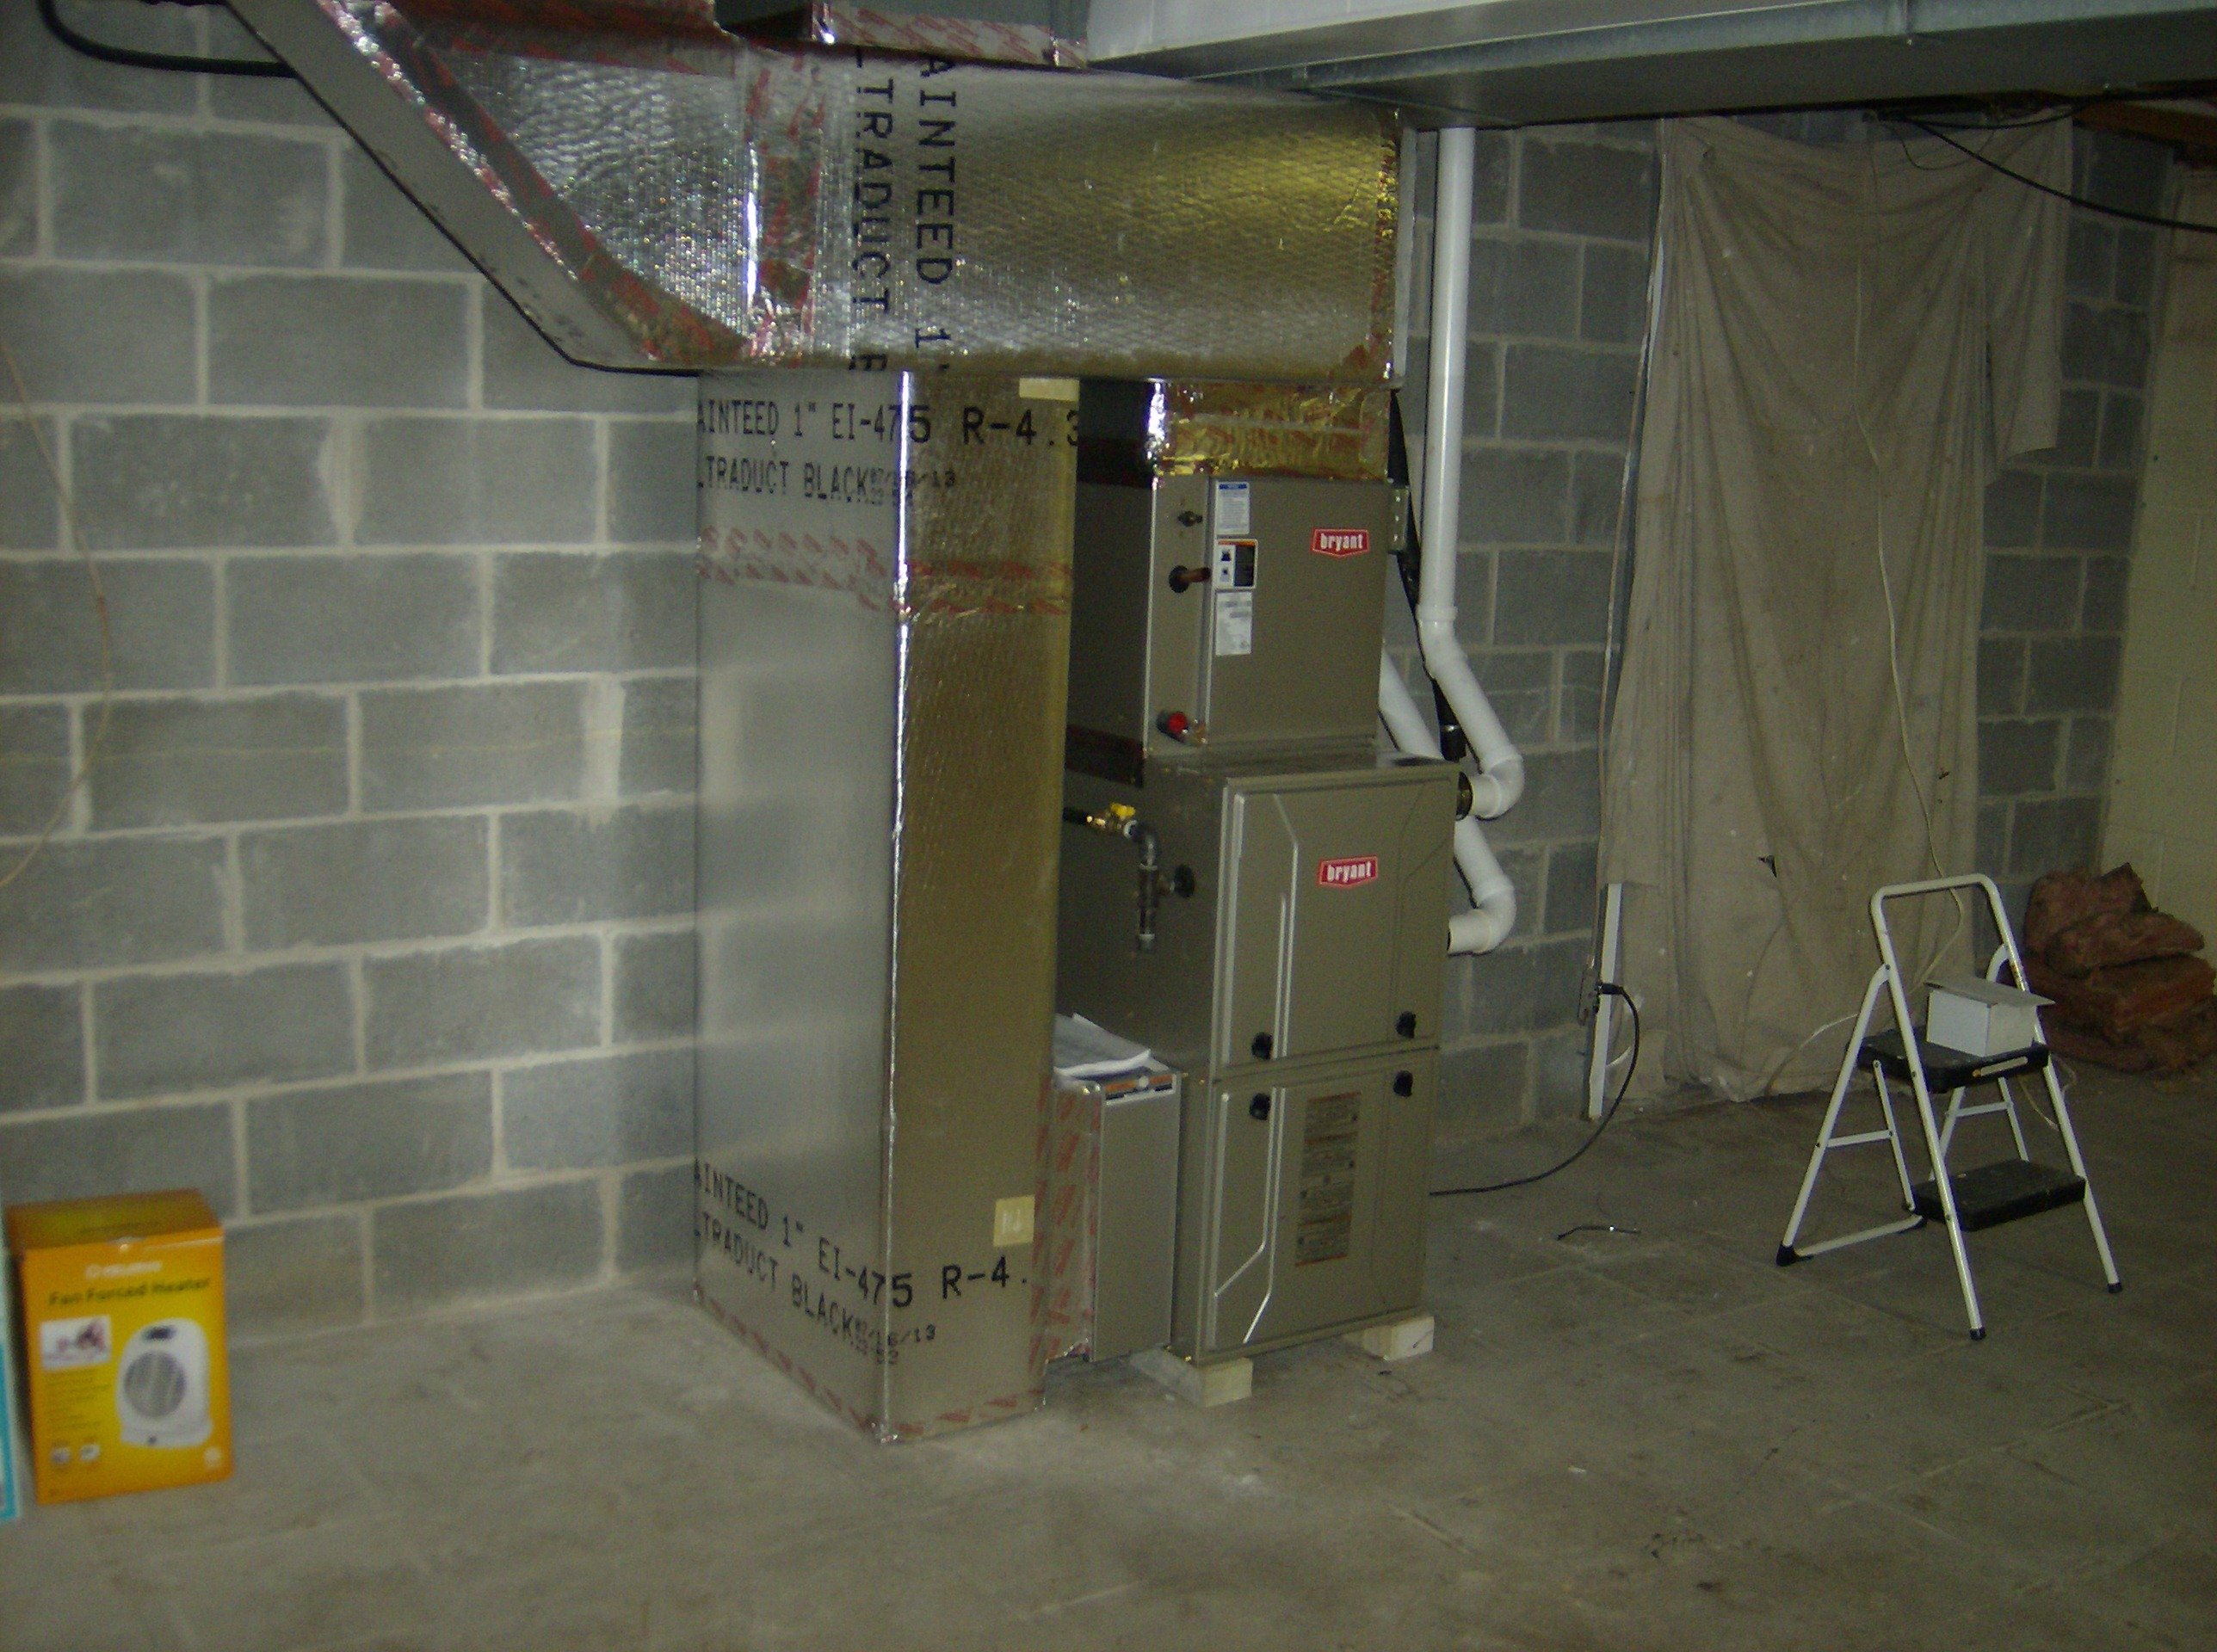 bryant 986t 2 stage gas variable speed blower furnace